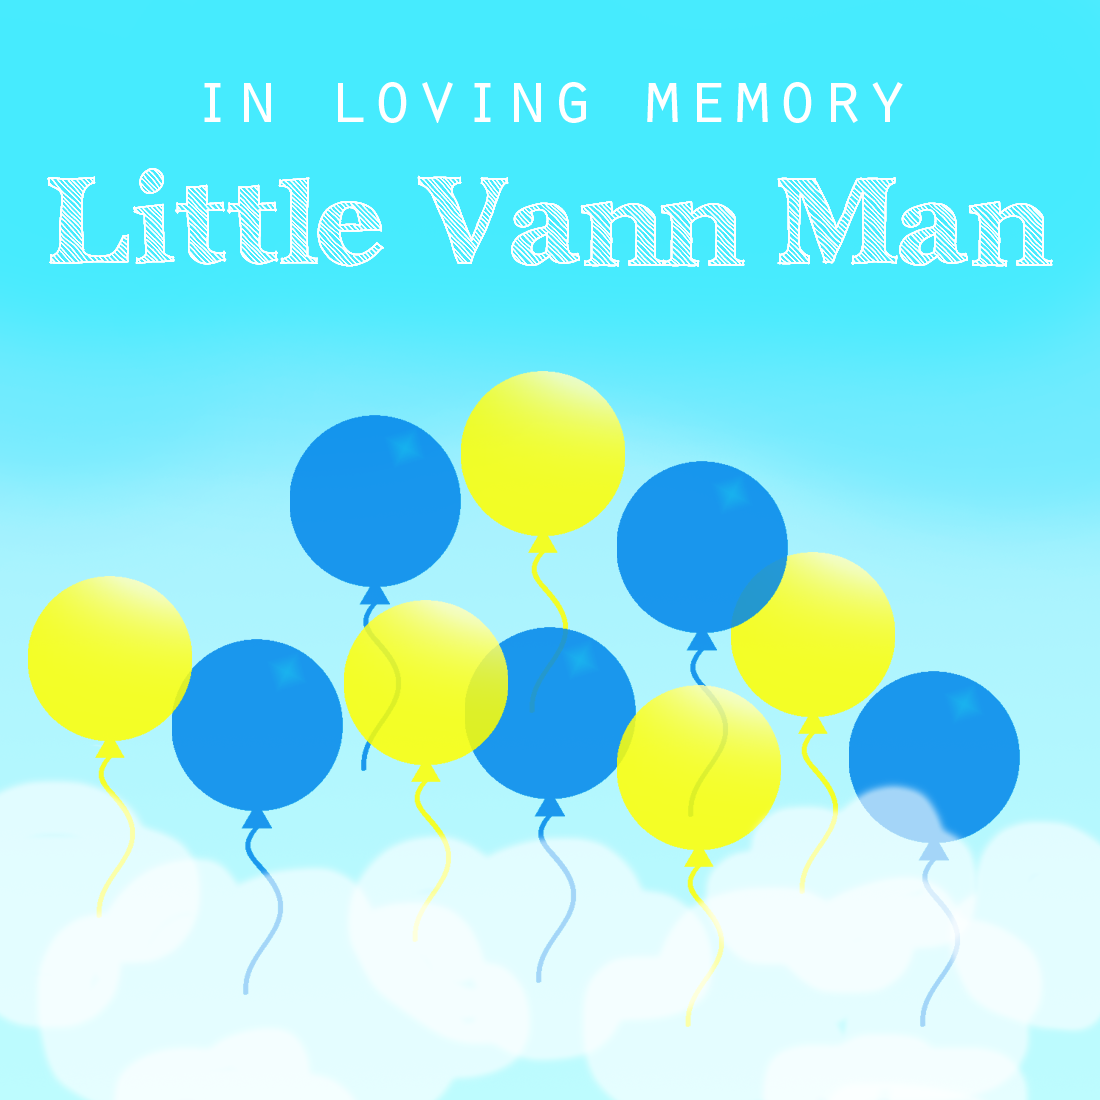 Little Man balloons